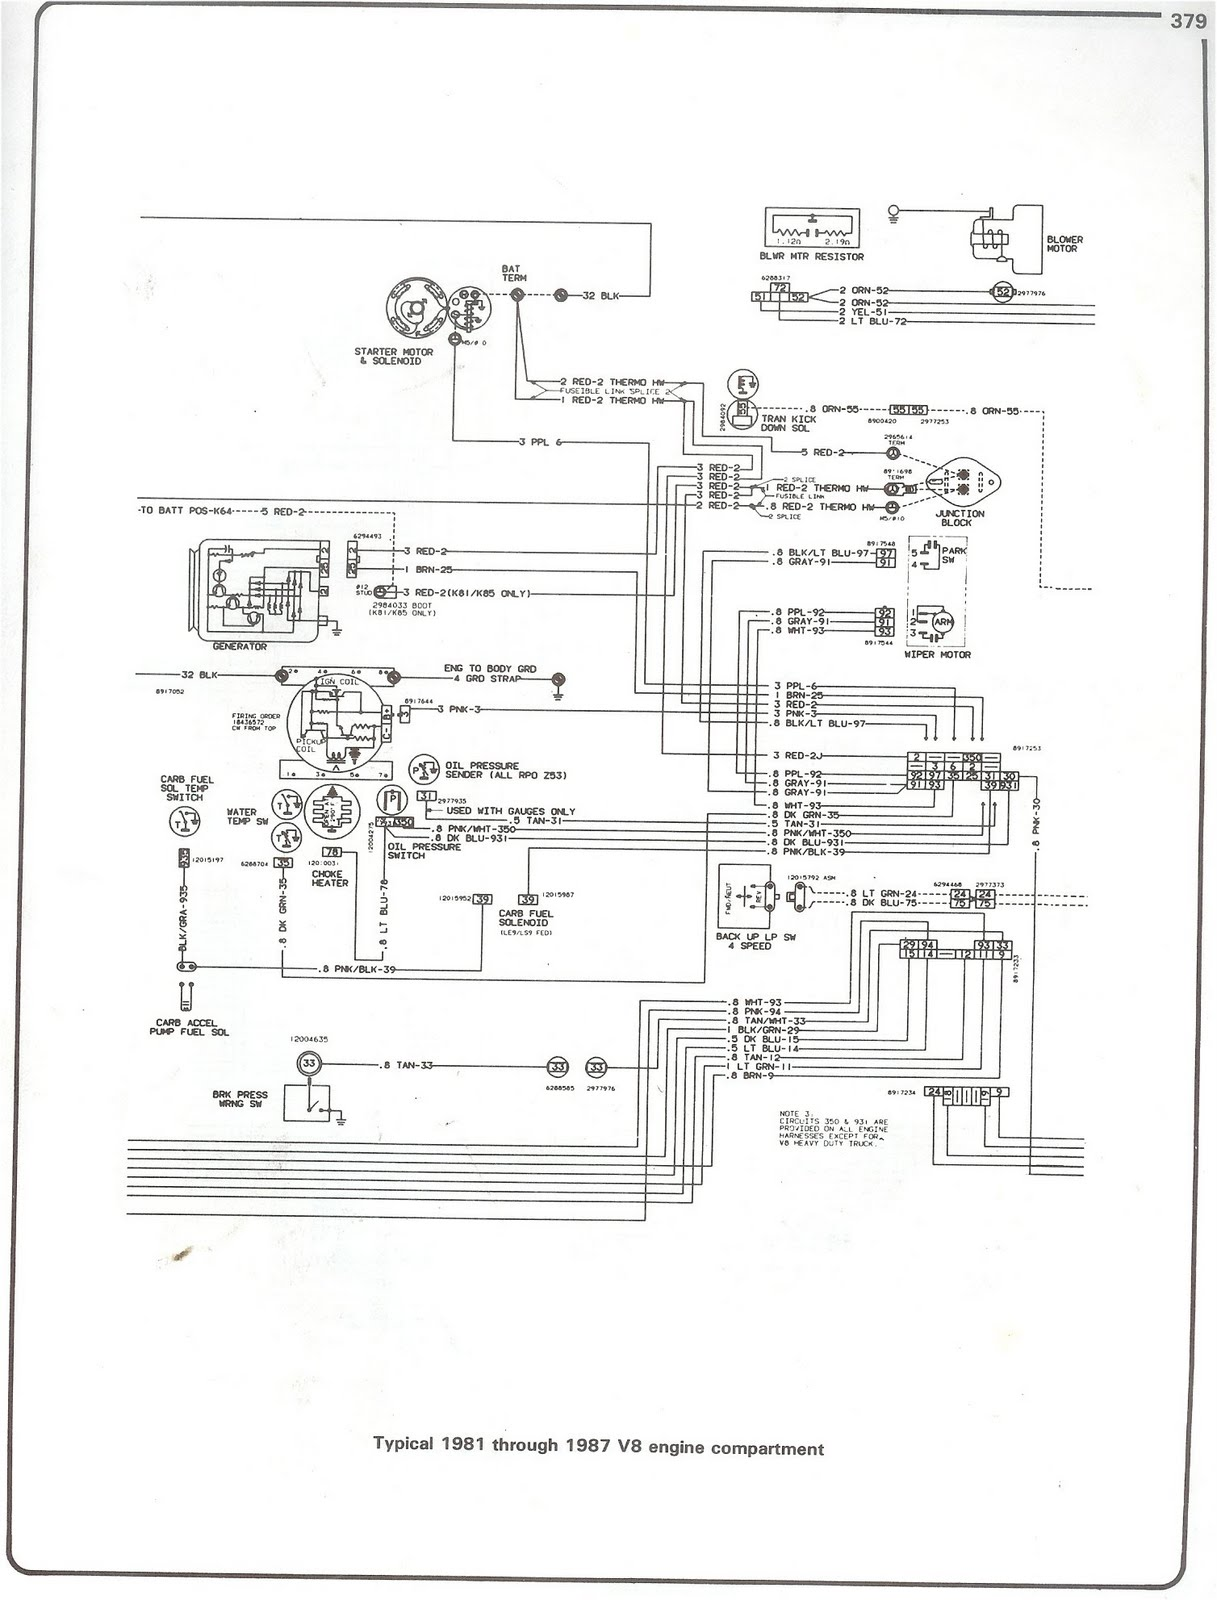 81 87_chevy_truck_V8_engine bulk head pinout diagram 87 r10 and 88 suburbans the 1947 Chevy Engine Wiring Harness at gsmportal.co